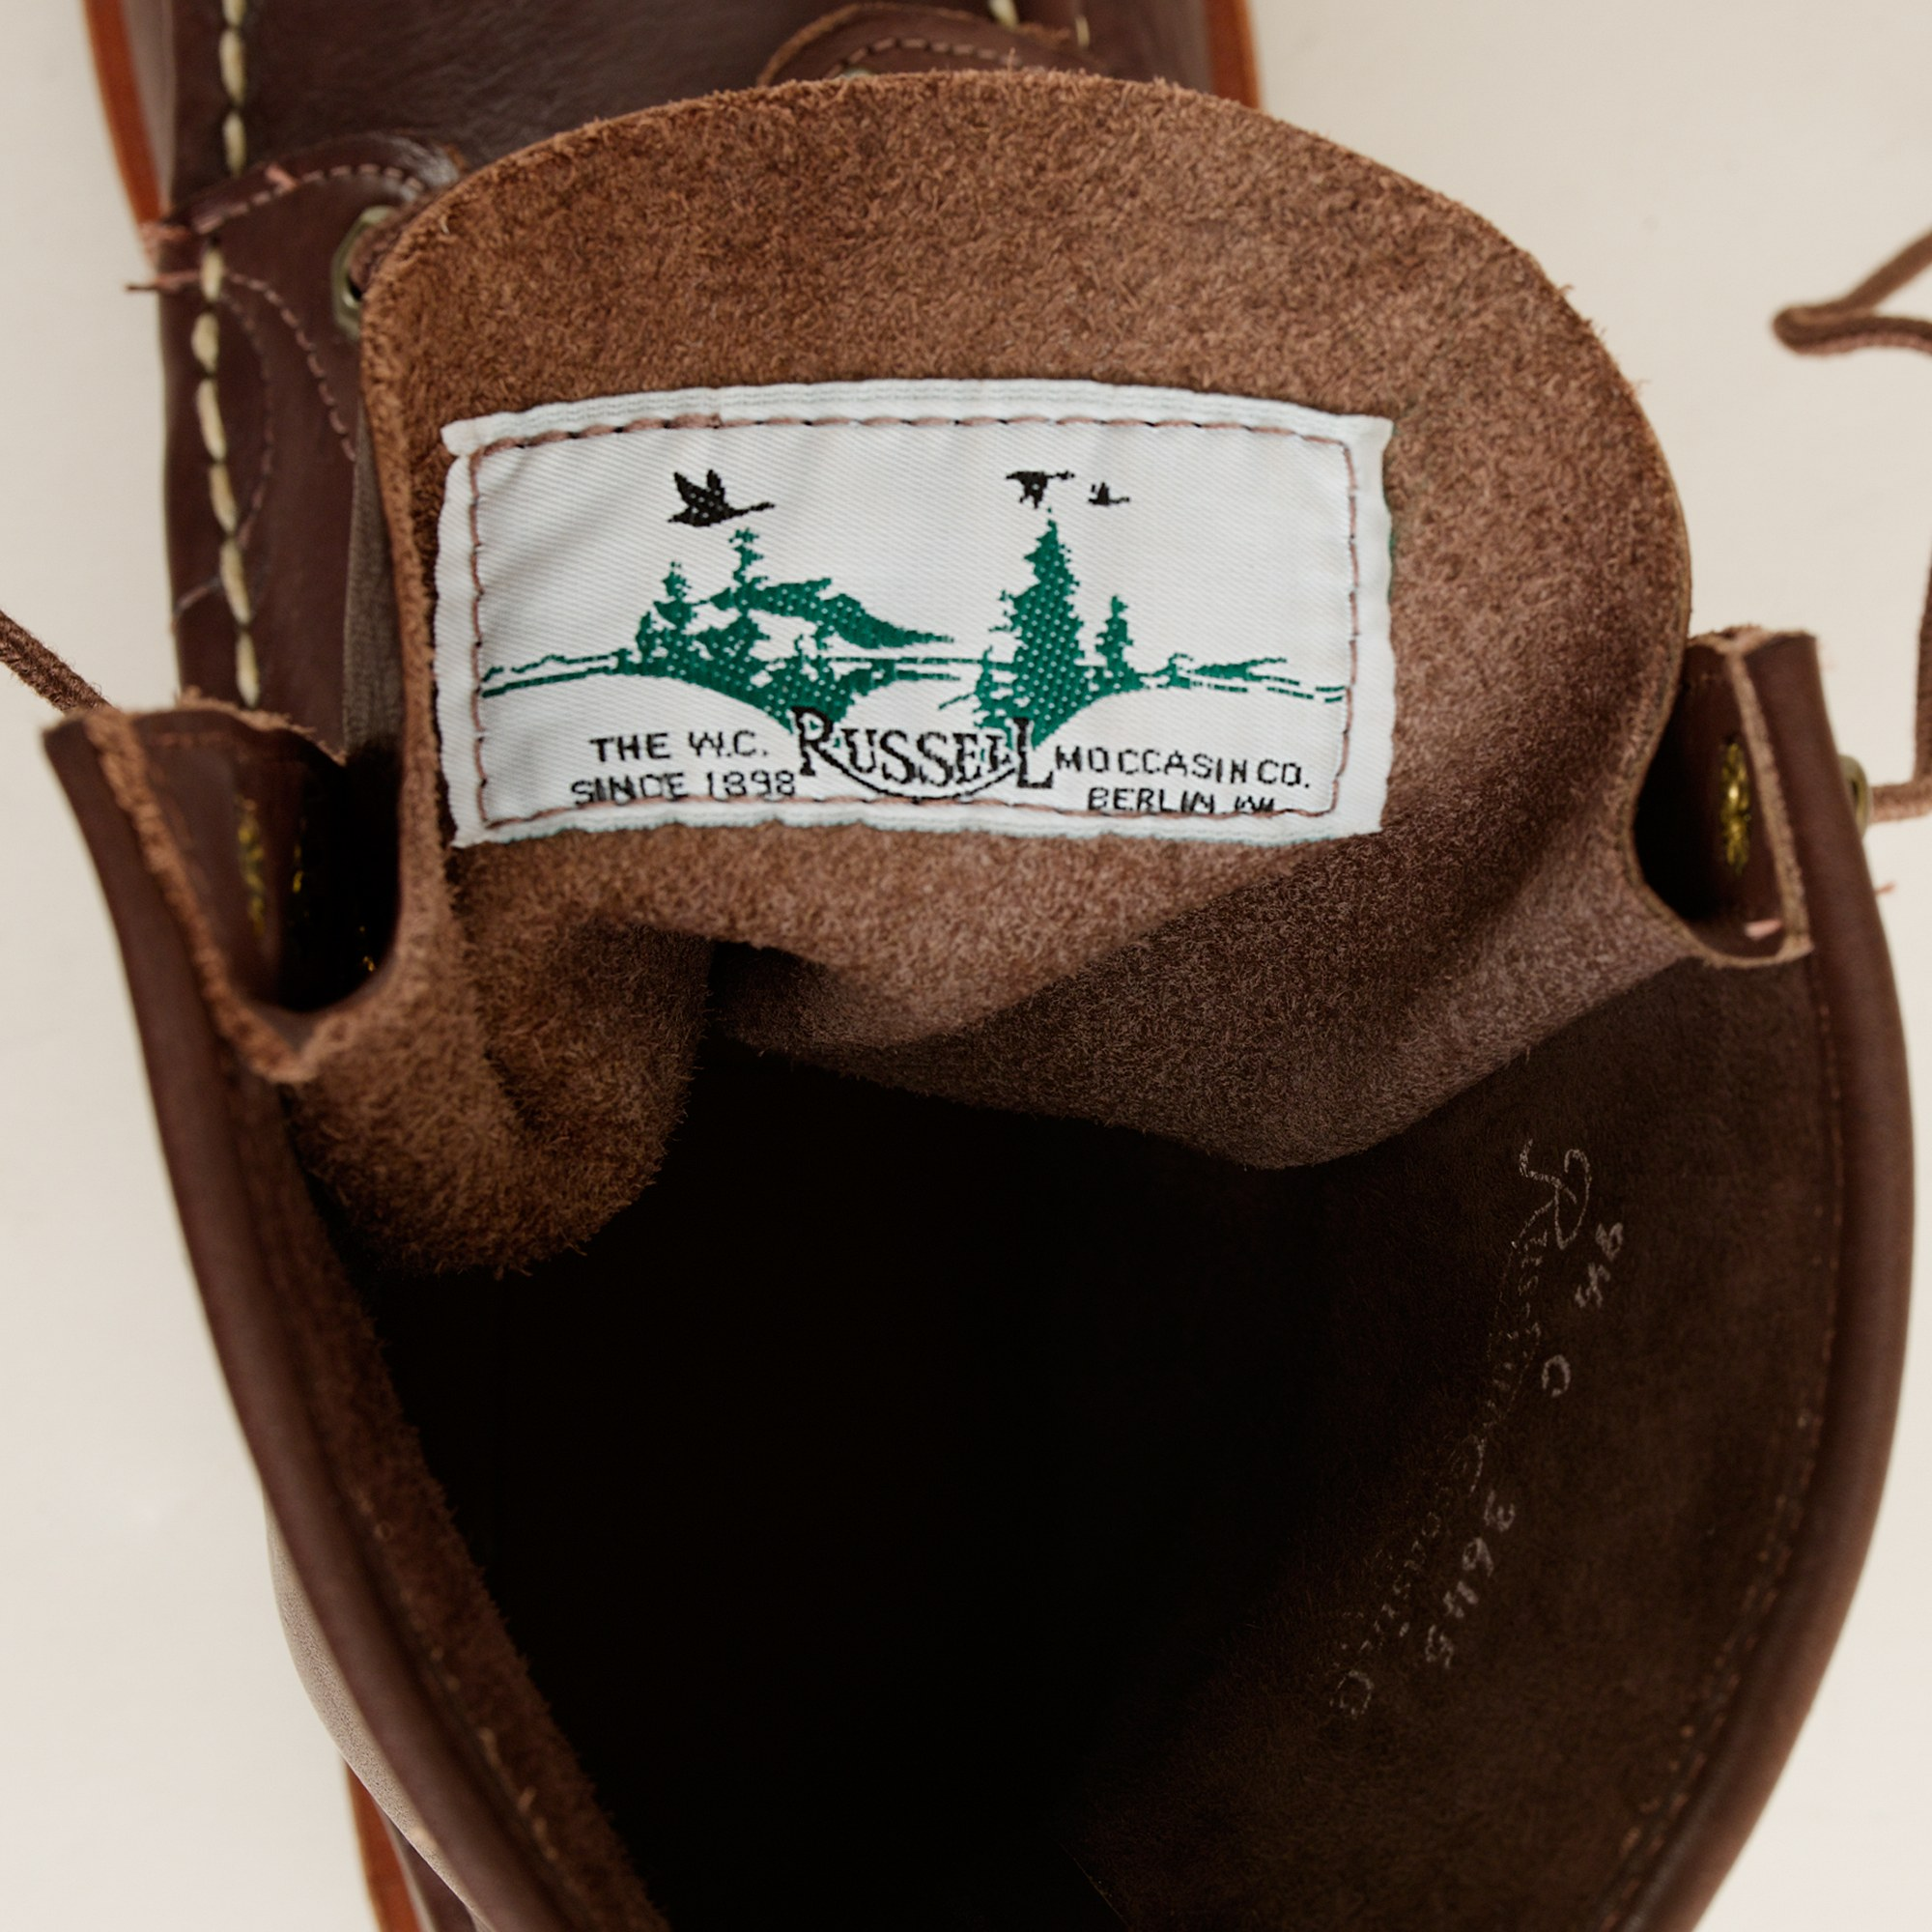 J Crew Russell Moccasin Co Imperial Boots In Brown For